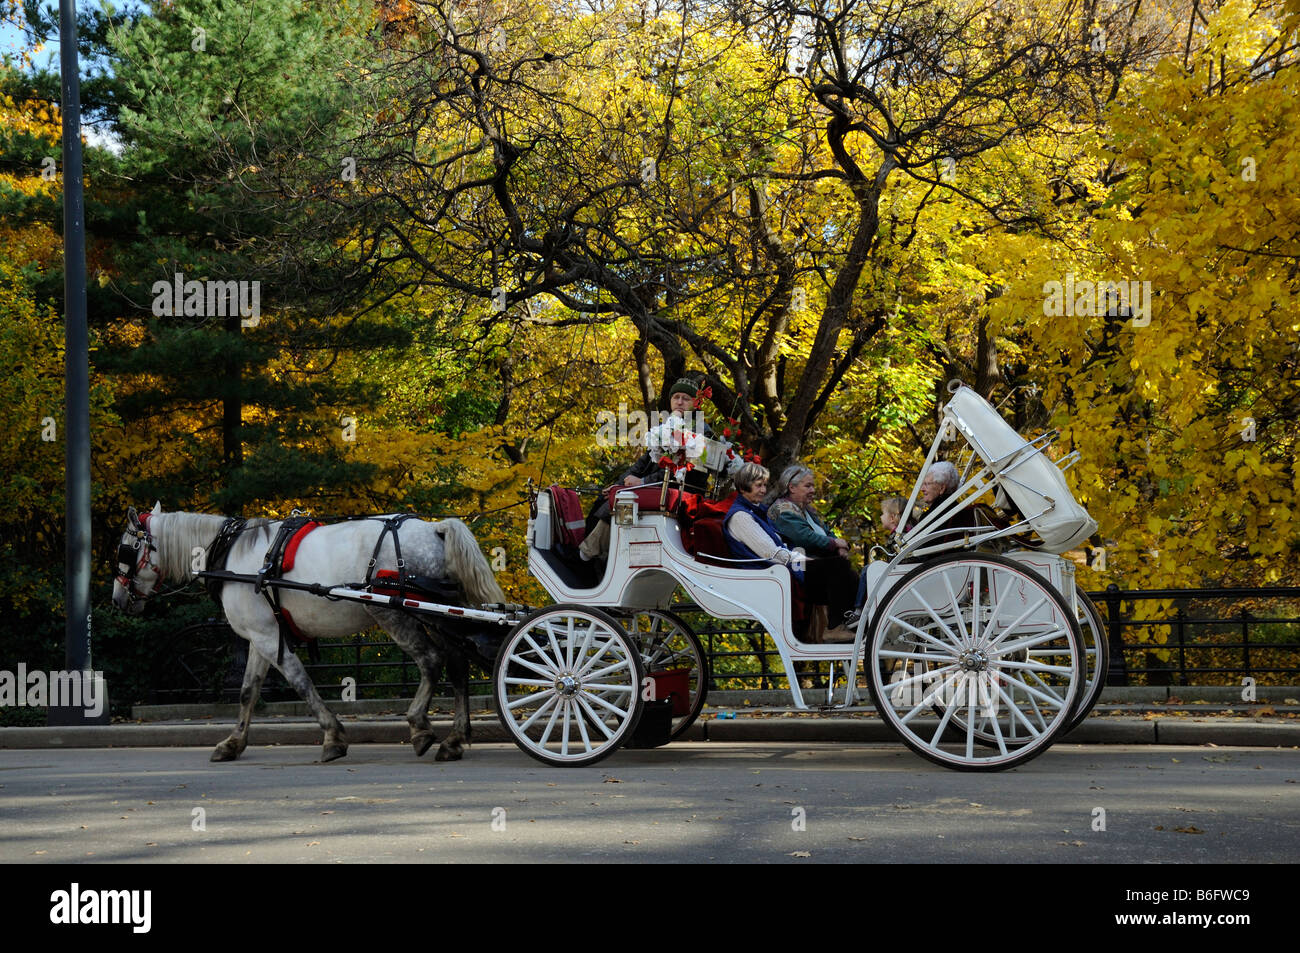 central park new york america usa horse drawn tourist taxi carriage stock photo royalty free. Black Bedroom Furniture Sets. Home Design Ideas